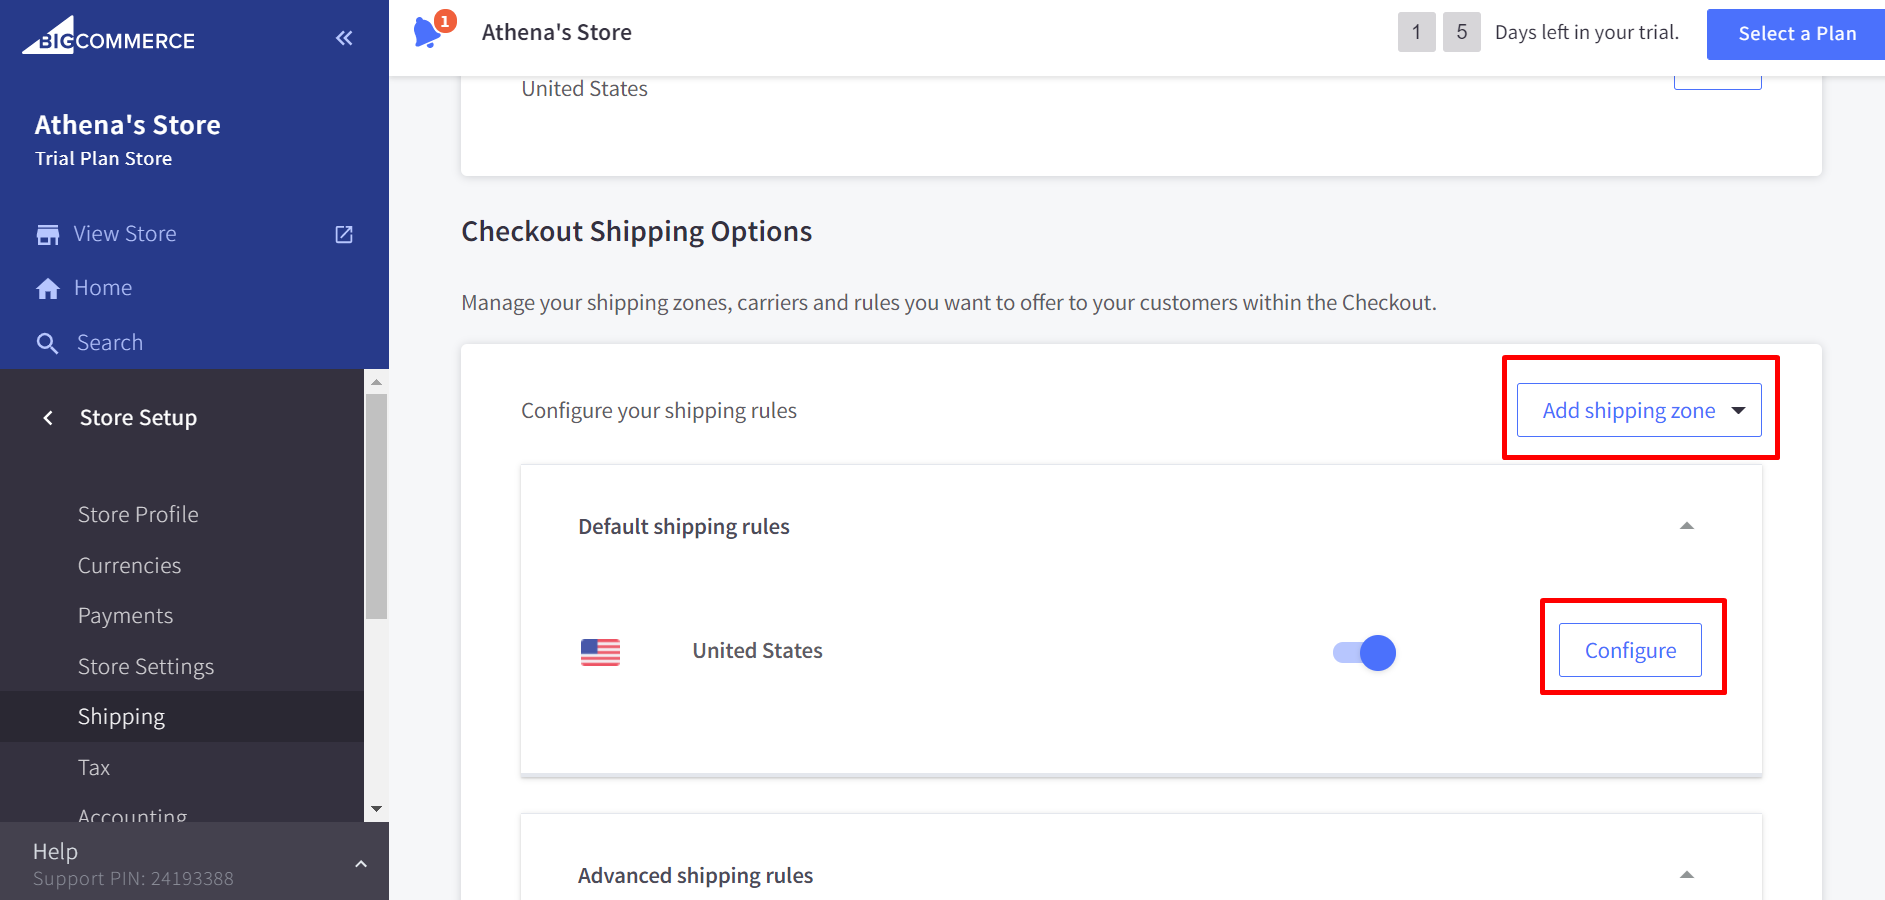 Click Edit or Configure next to a shipping zone > Shipping